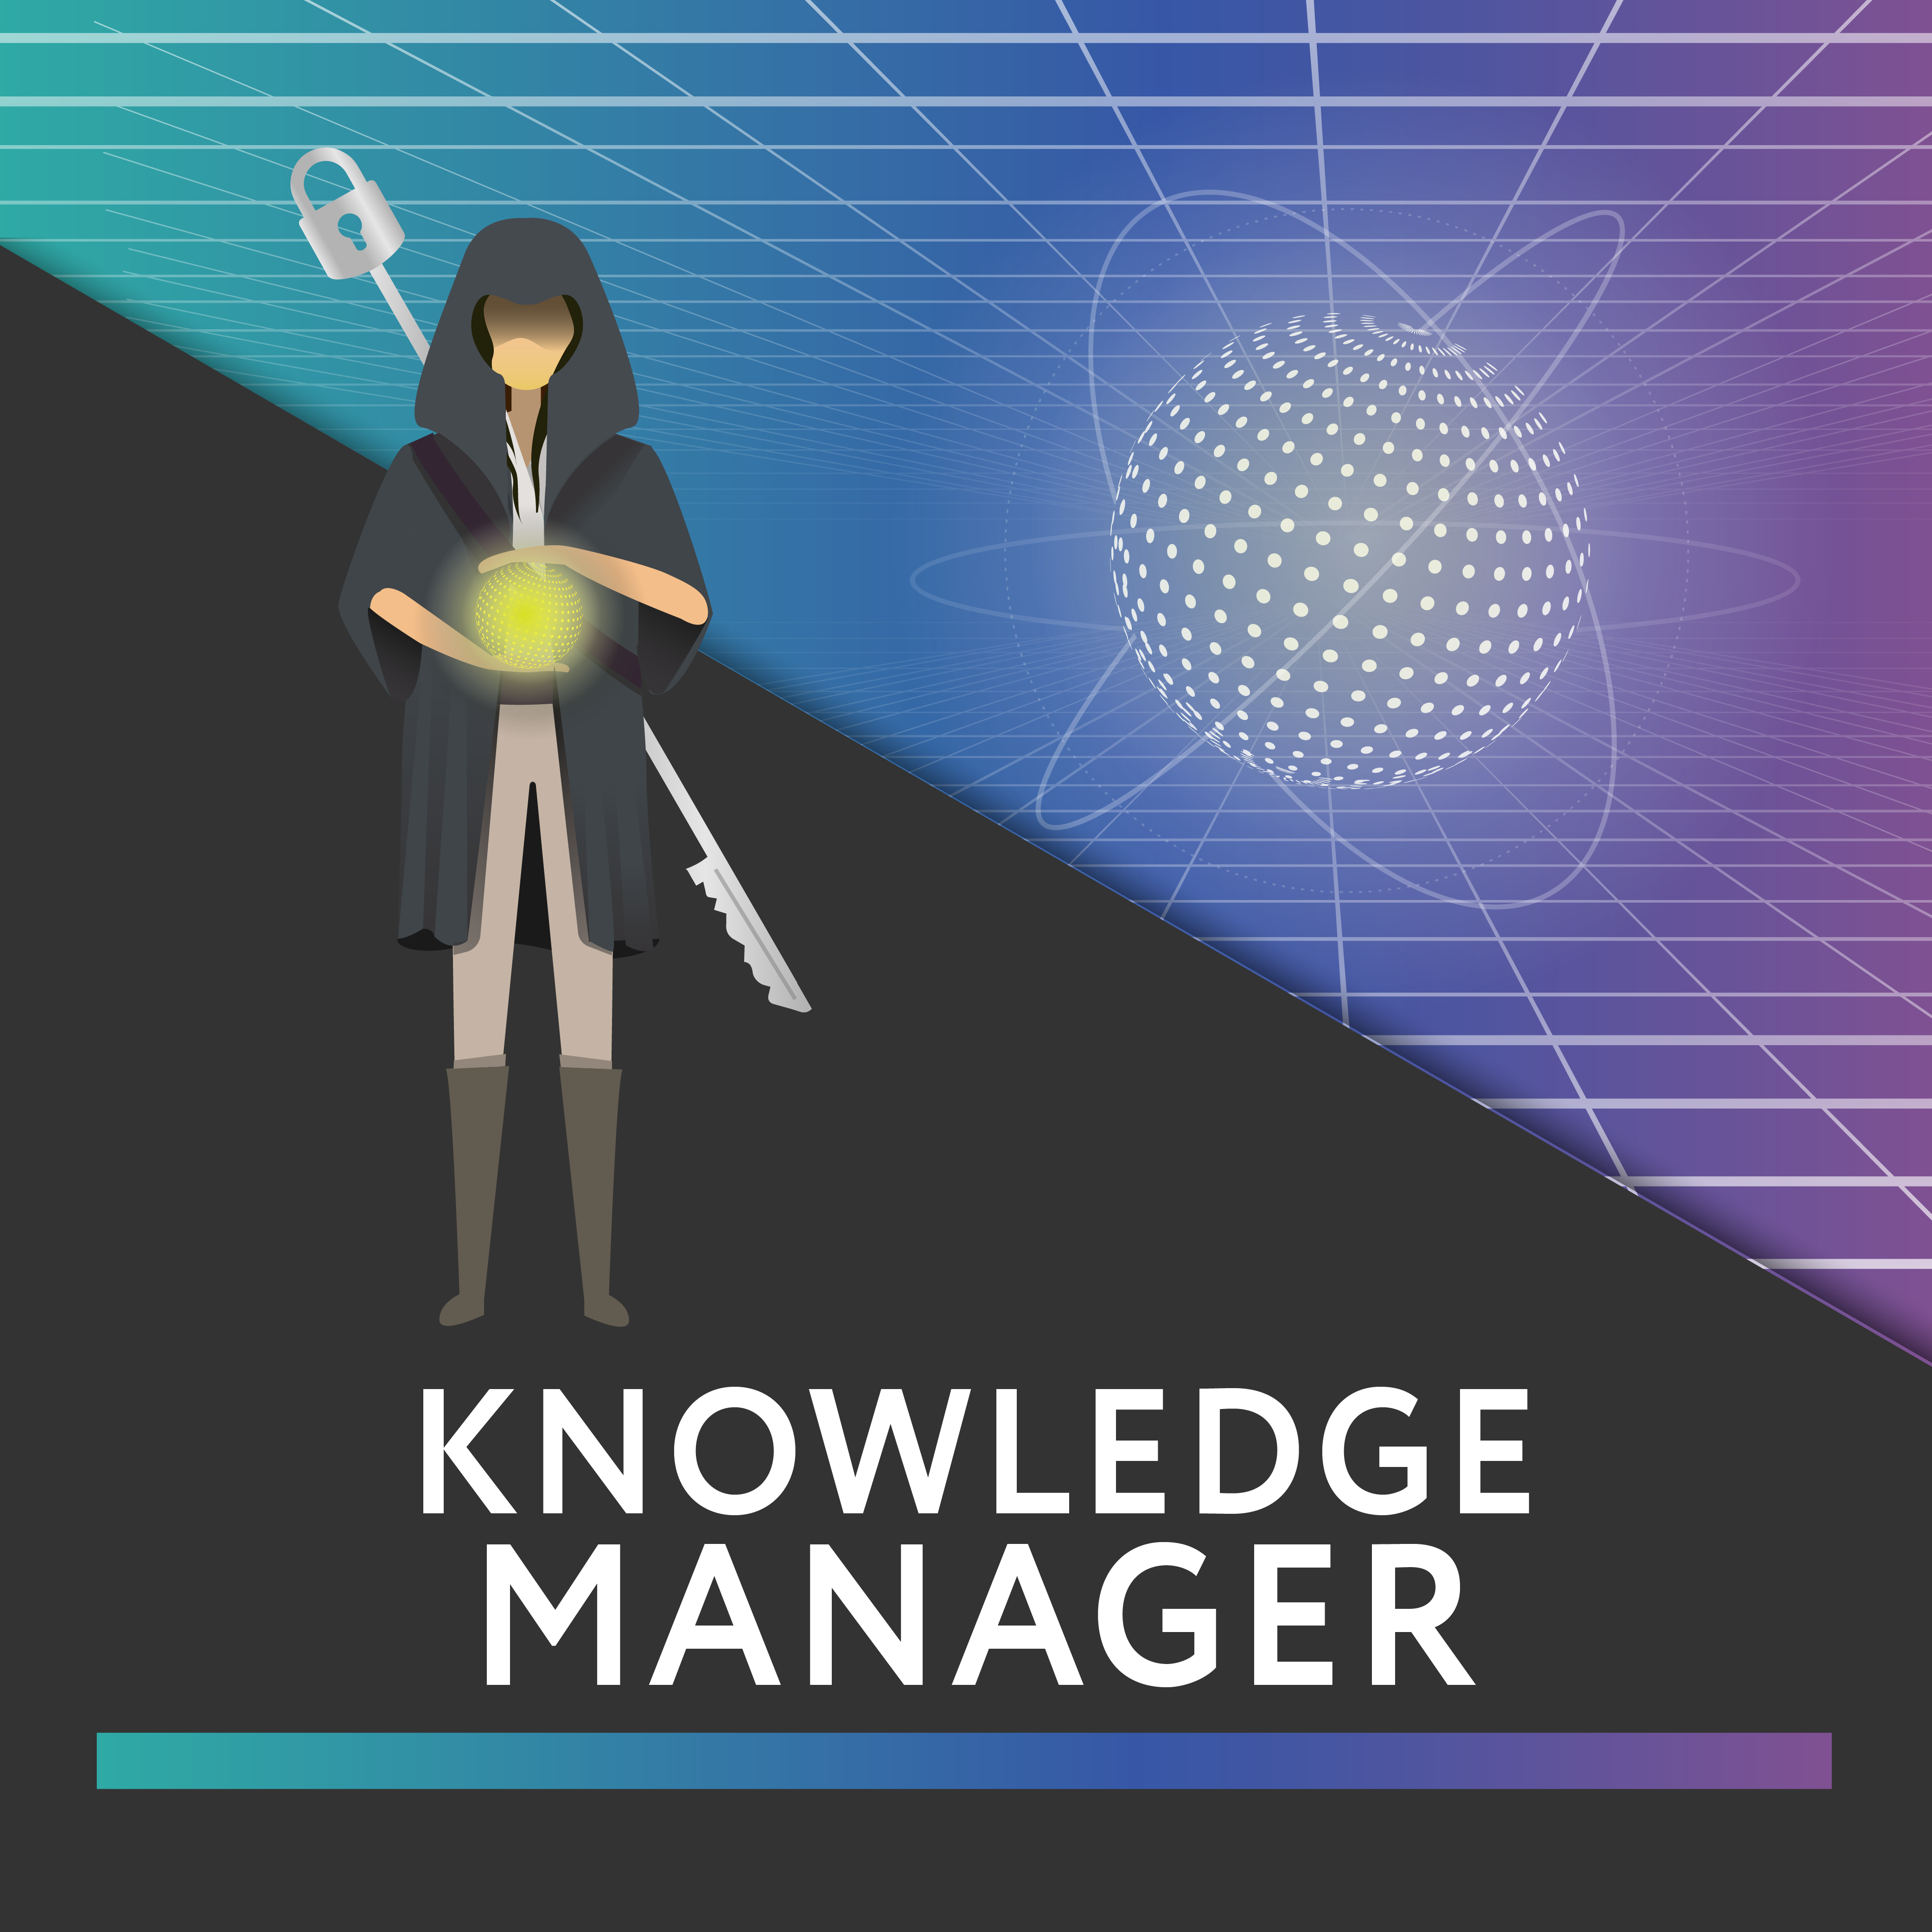 Knowledge Manager